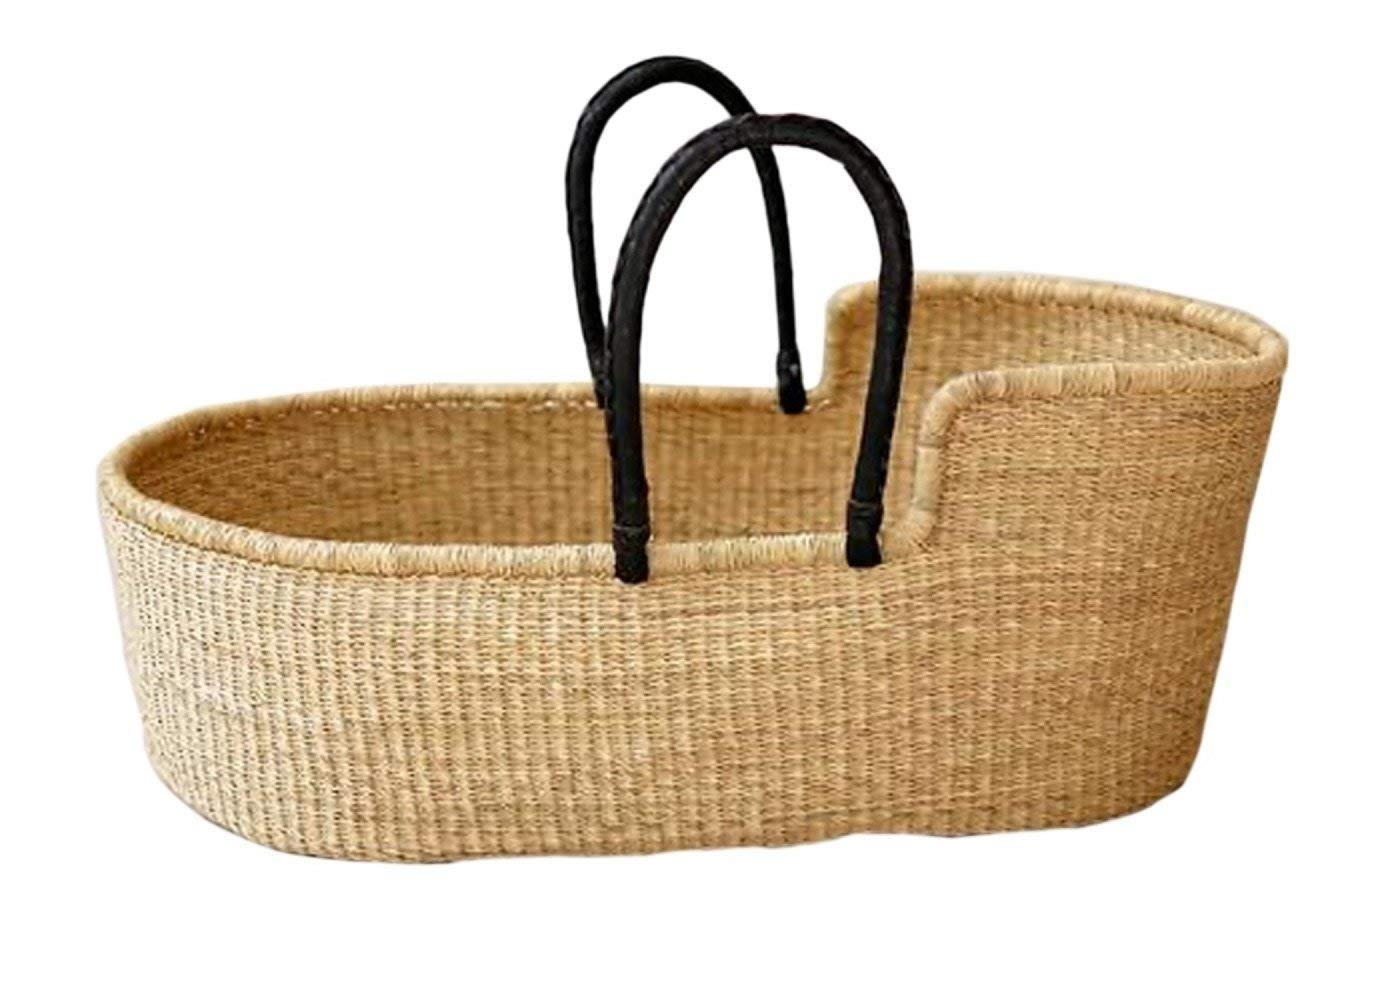 Moses Basket For Baby | Baby Bassinet | Baby bed | Baby basket | Baby shower gift